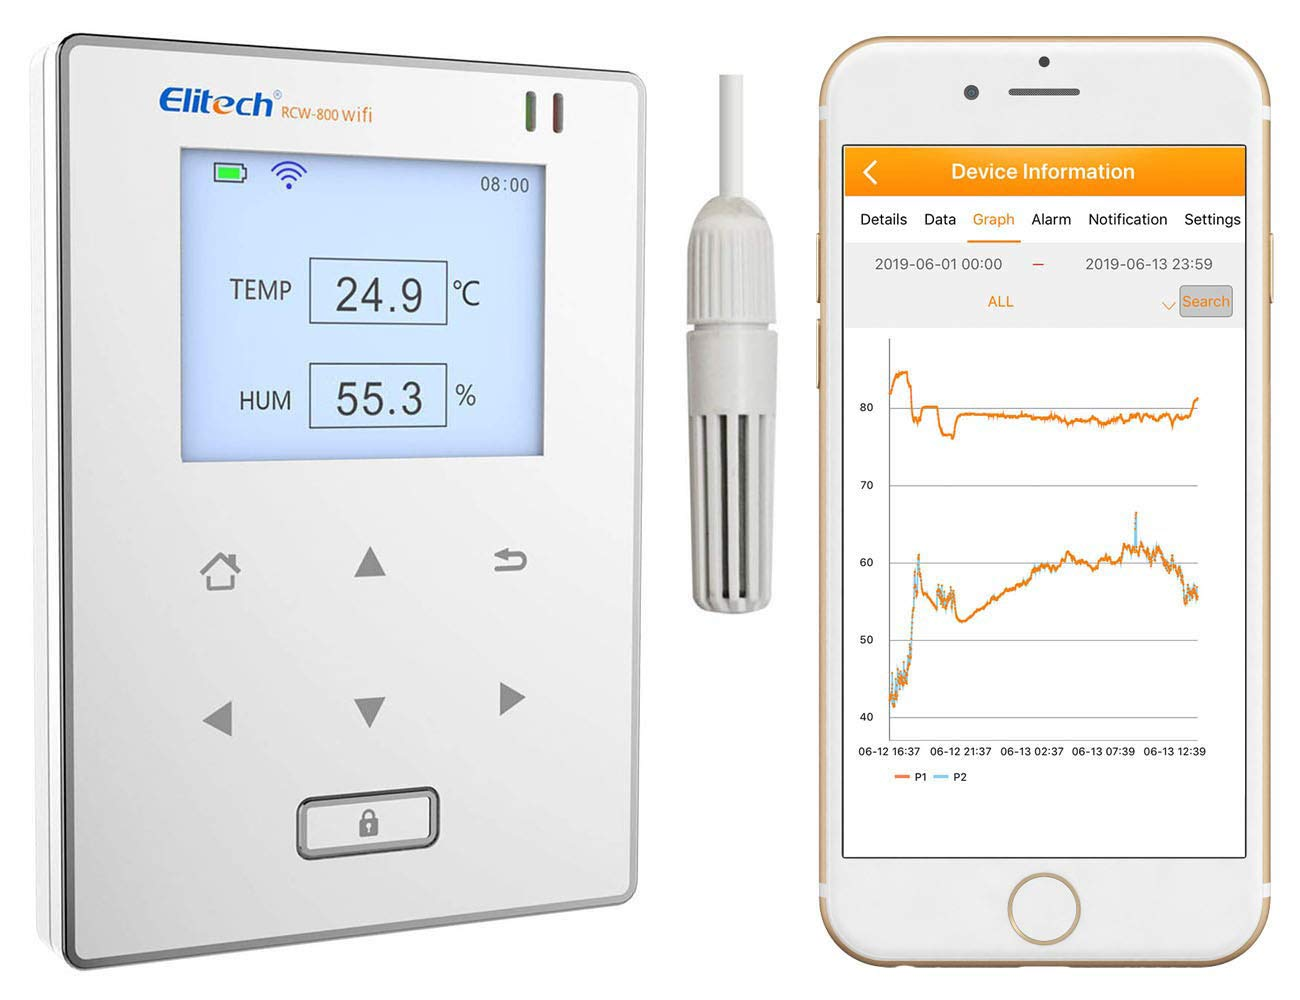 Elitech RCW-800 wifi Temperature and Humidity Data Logger Wirelesss Remote Monitor. Free 24/7 Monitoring, Alerts & Historical Data. Free iPhone/Android Apps, Monitor from Anywhere, Anytime! by Elitech